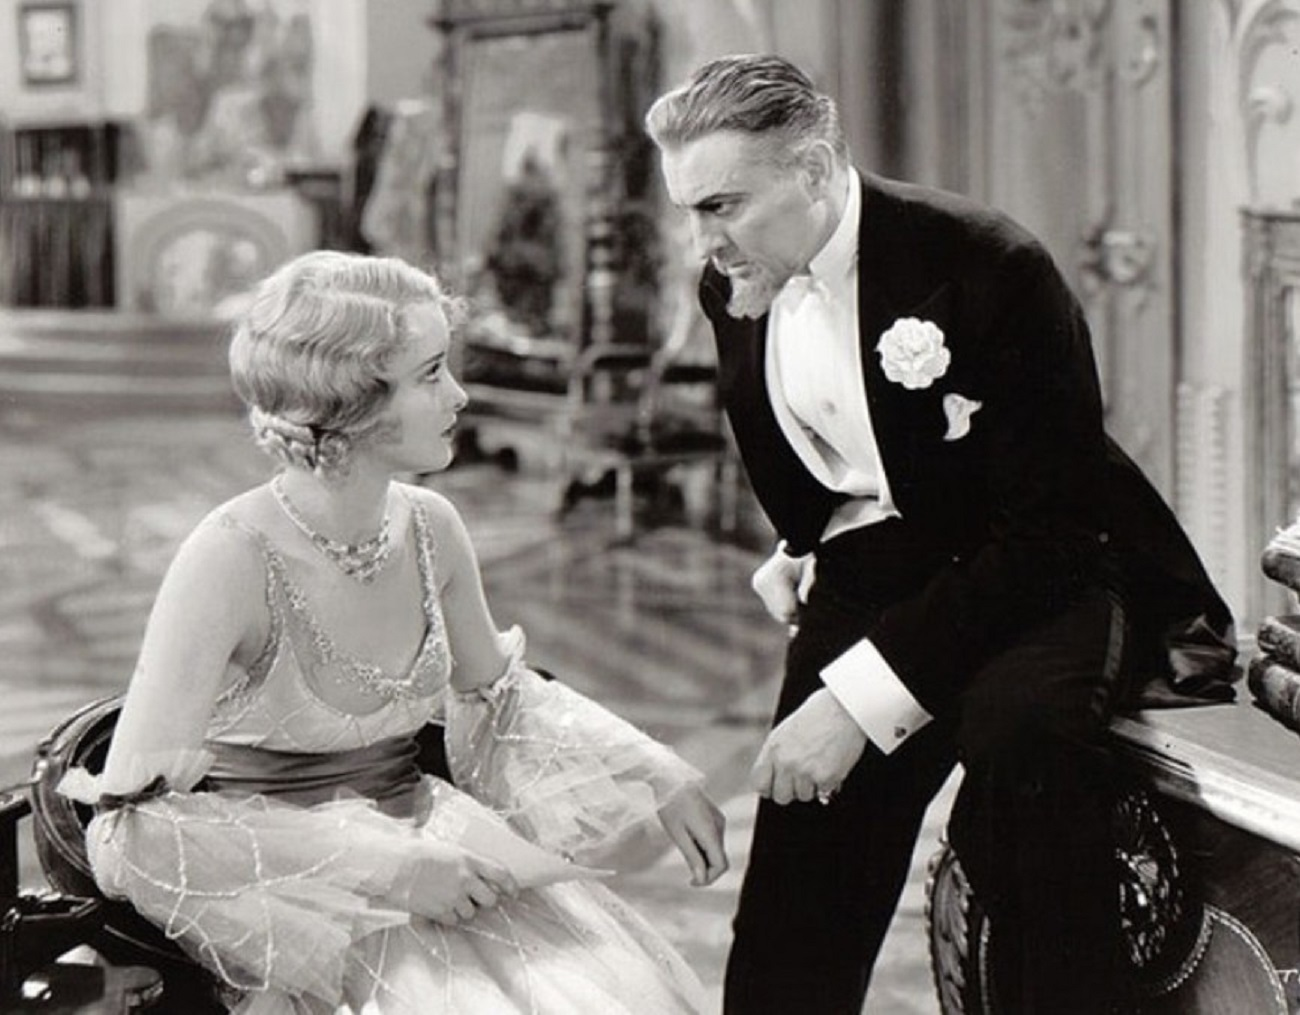 John Barrymore and Marian Marsh in The Mad Genius (1931)